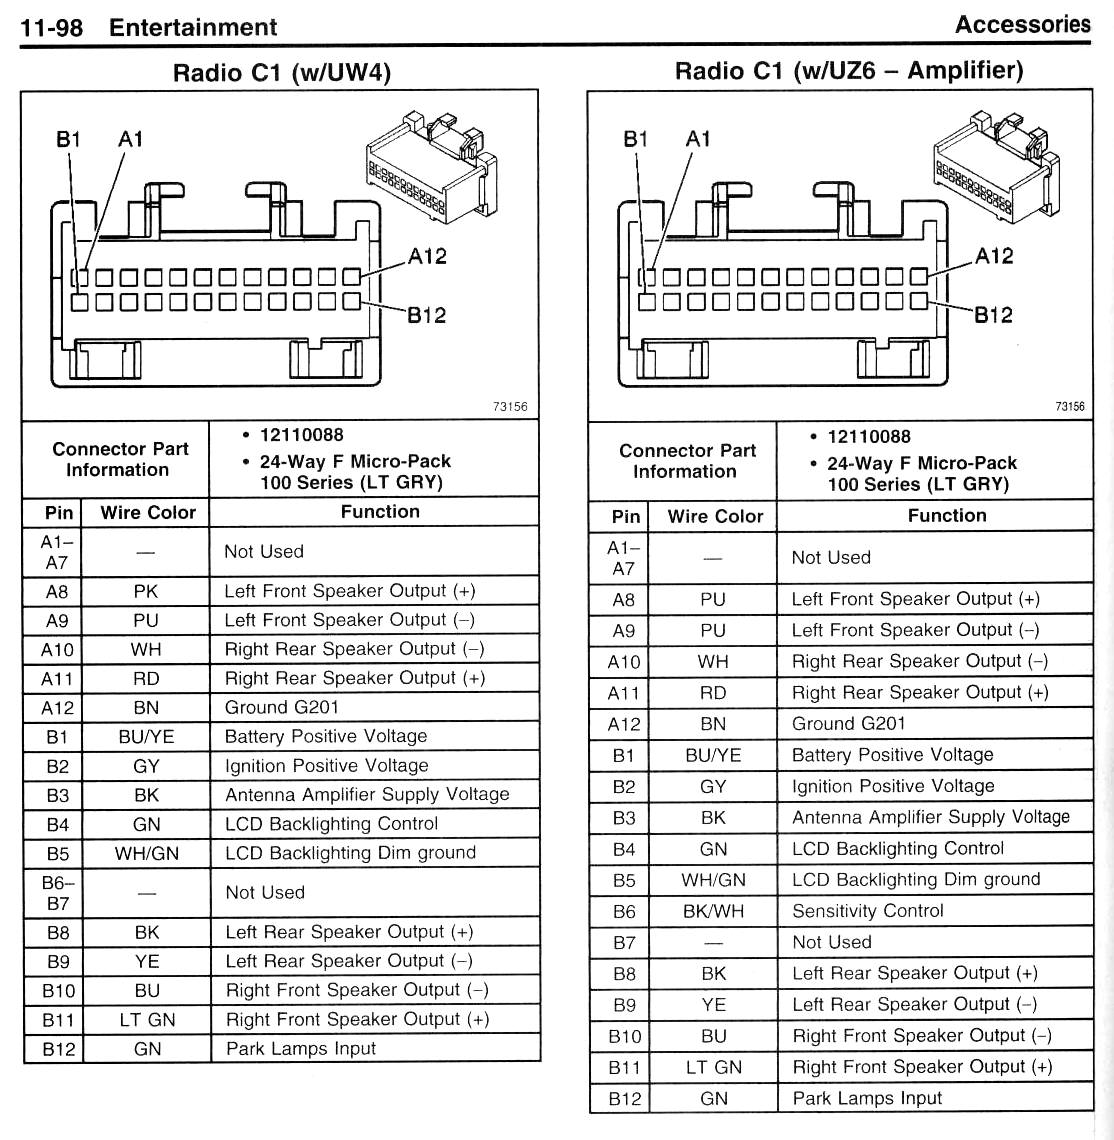 Gtmustangcentraljunctionbox likewise Pontiac Vibe Stereo Wiring Connector in addition Mustang Engine Layout in addition Jeep Cherokee Buzzer Fuse Box Map additionally Mustang Under Dash Fuse Diagram. on 2004 ford mustang fuse box diagram